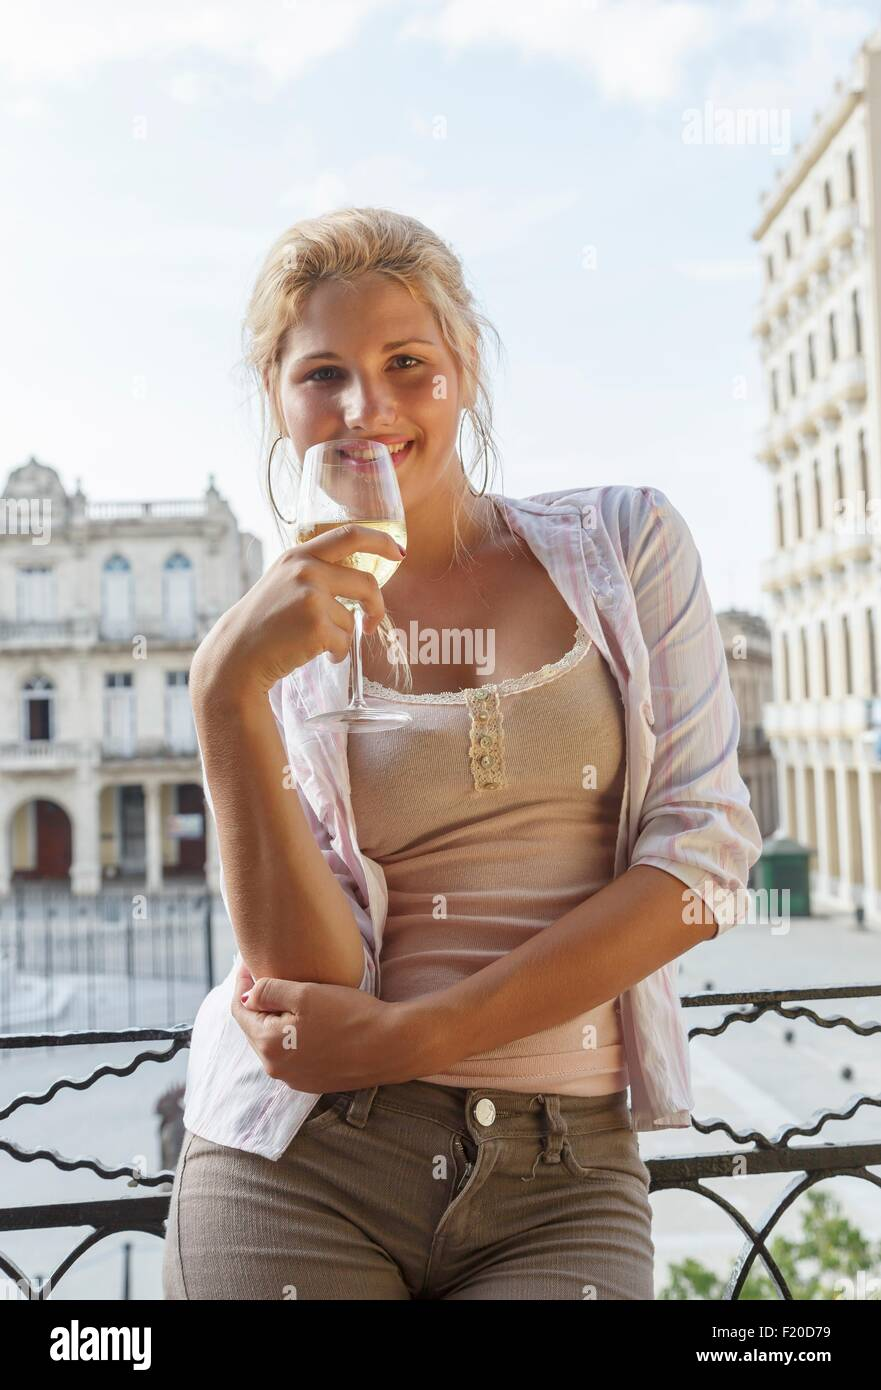 Portrait of young woman drinking wine on restaurant balcony in Plaza Vieja, Havana, Cuba Stock Photo